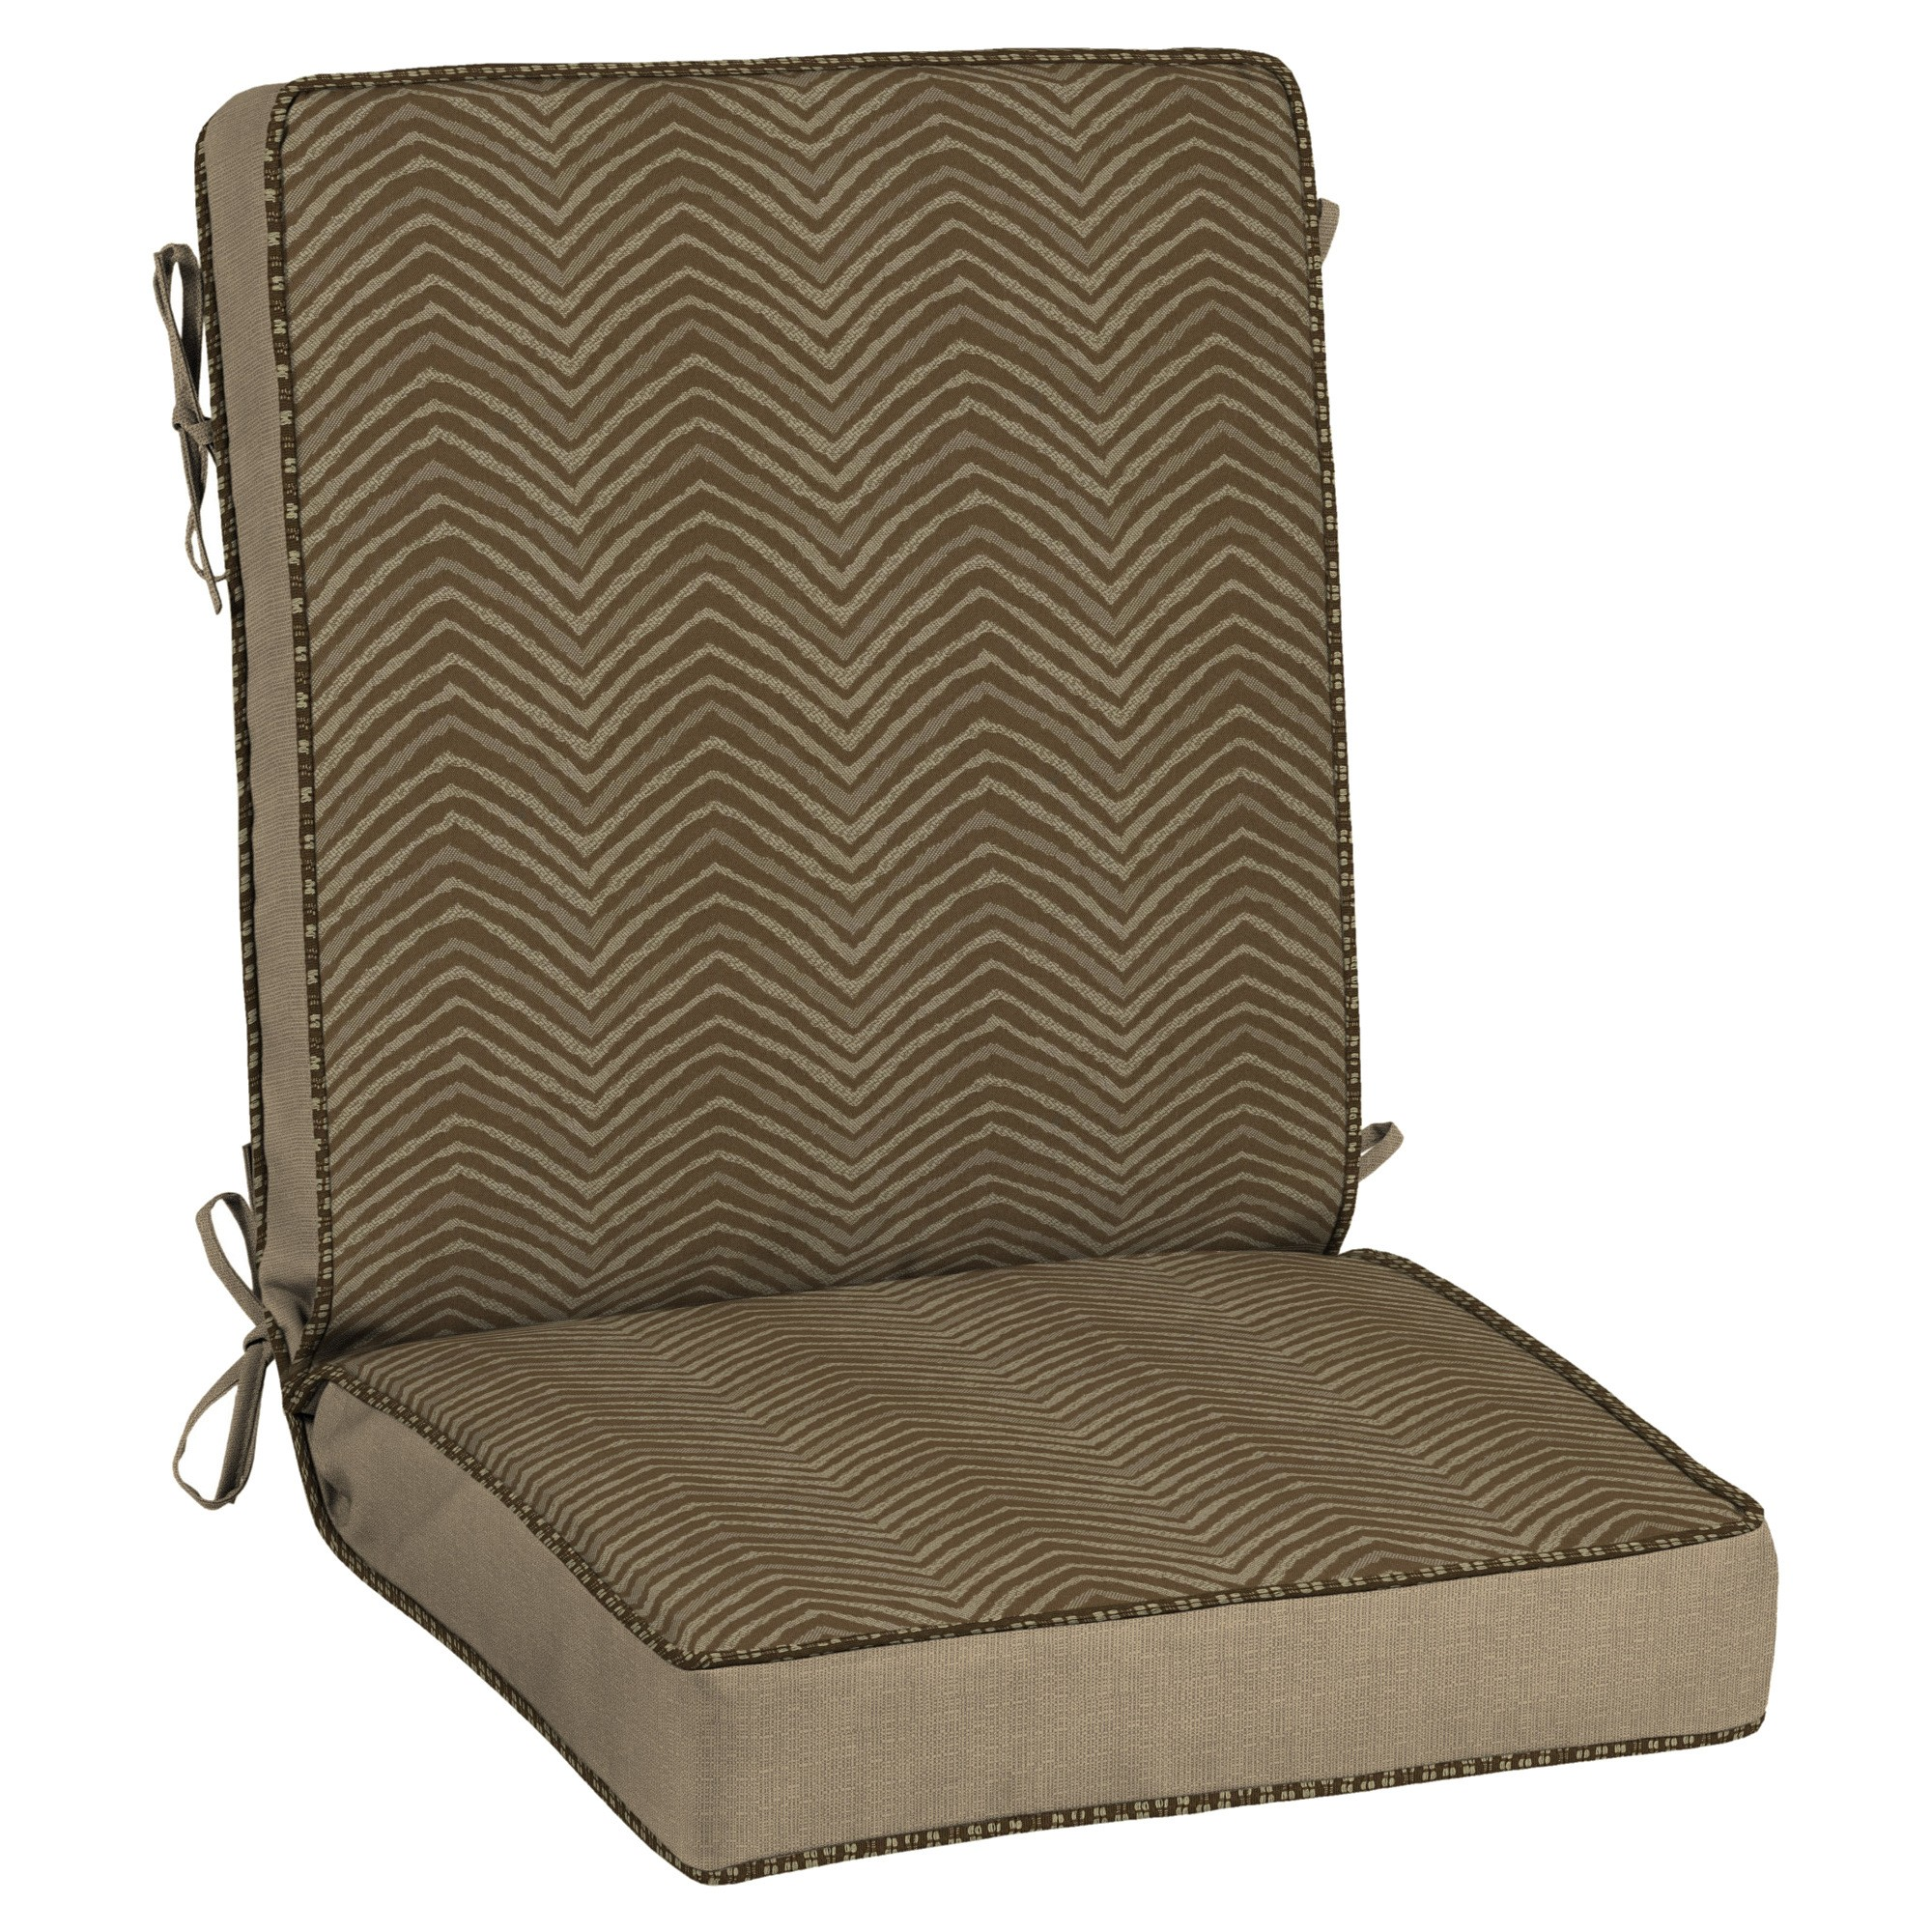 Zebra Chair Cushion   Bombay Outdoors, Brown